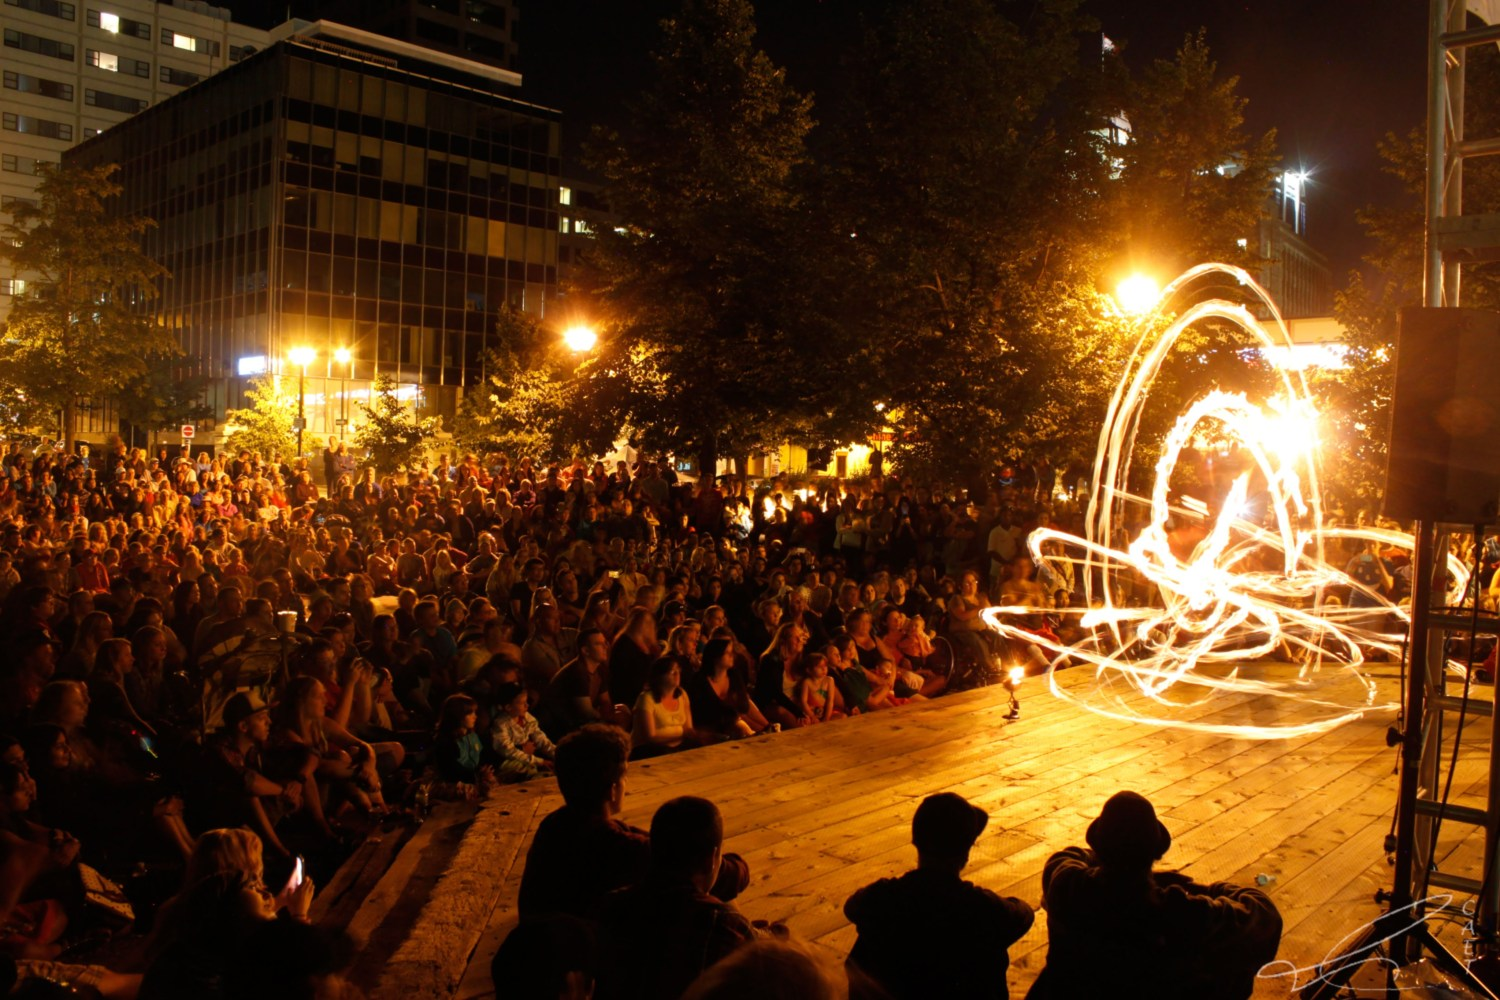 Fire performers at the 2016 Halifax Busker Festival